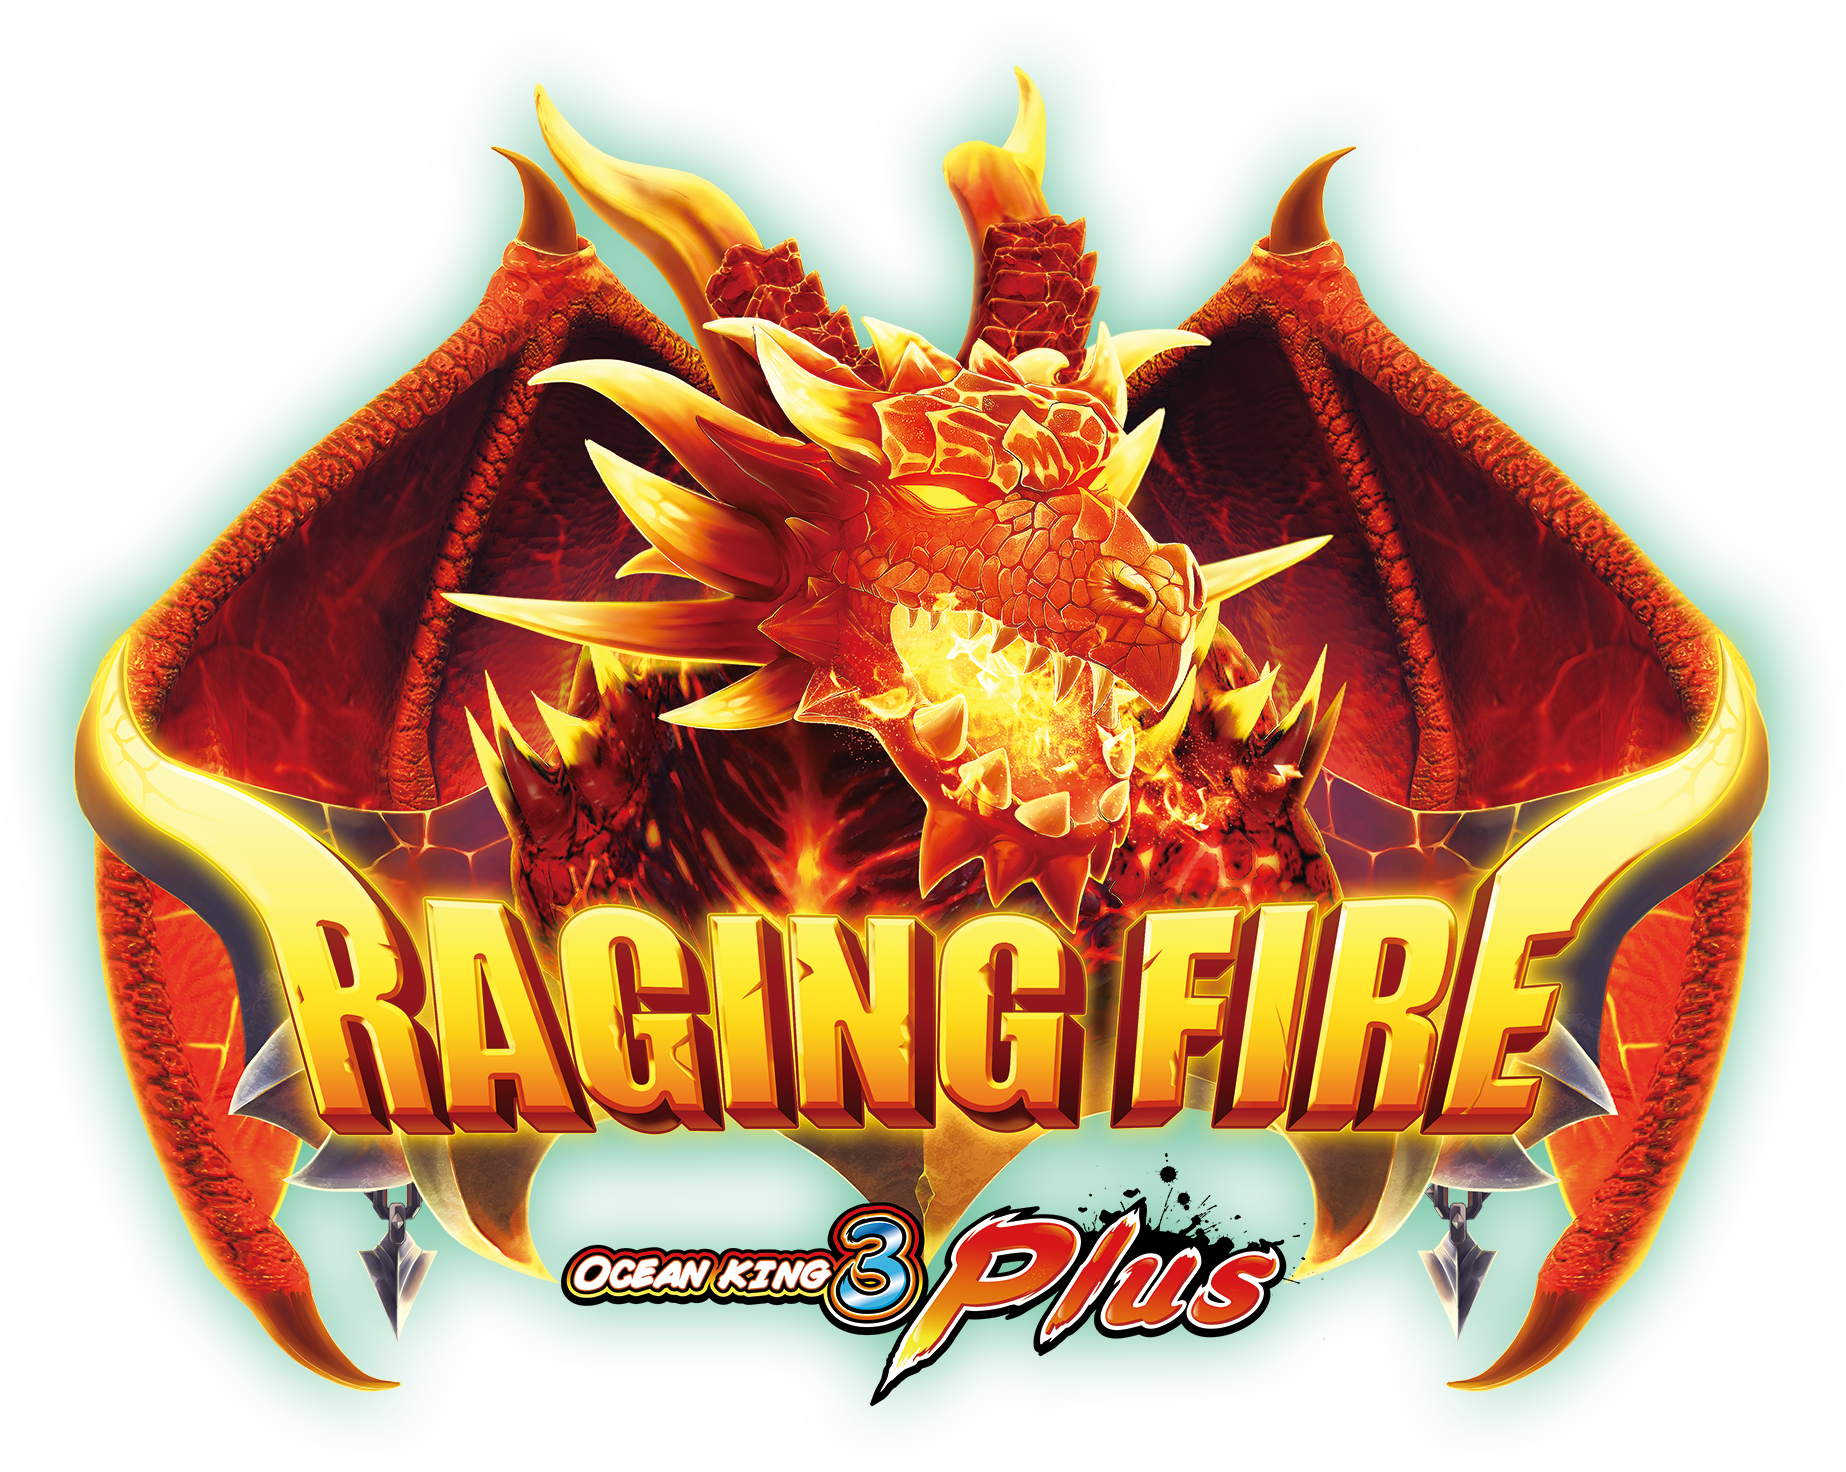 Ocean King 3 Plus : Raging Fire